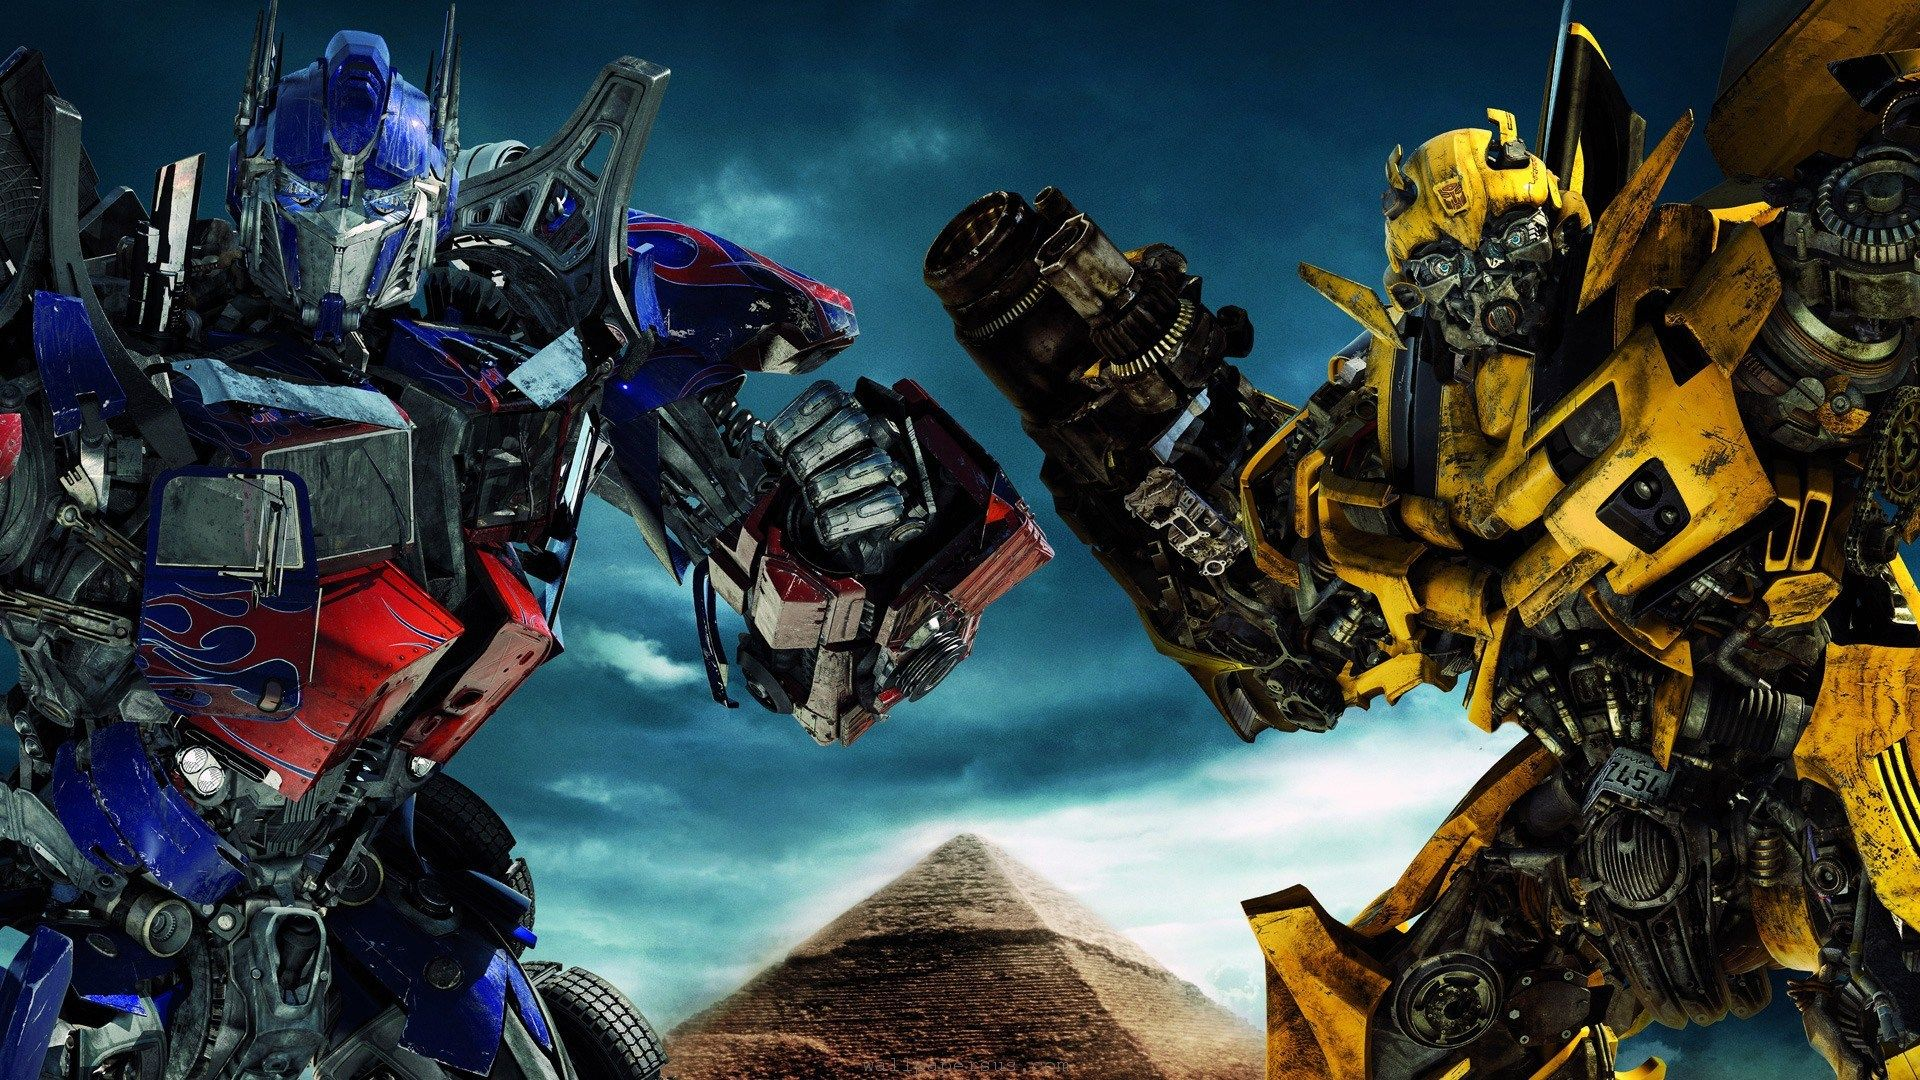 Optimus Prime in Transformers 3 Wallpapers | HD Wallpapers